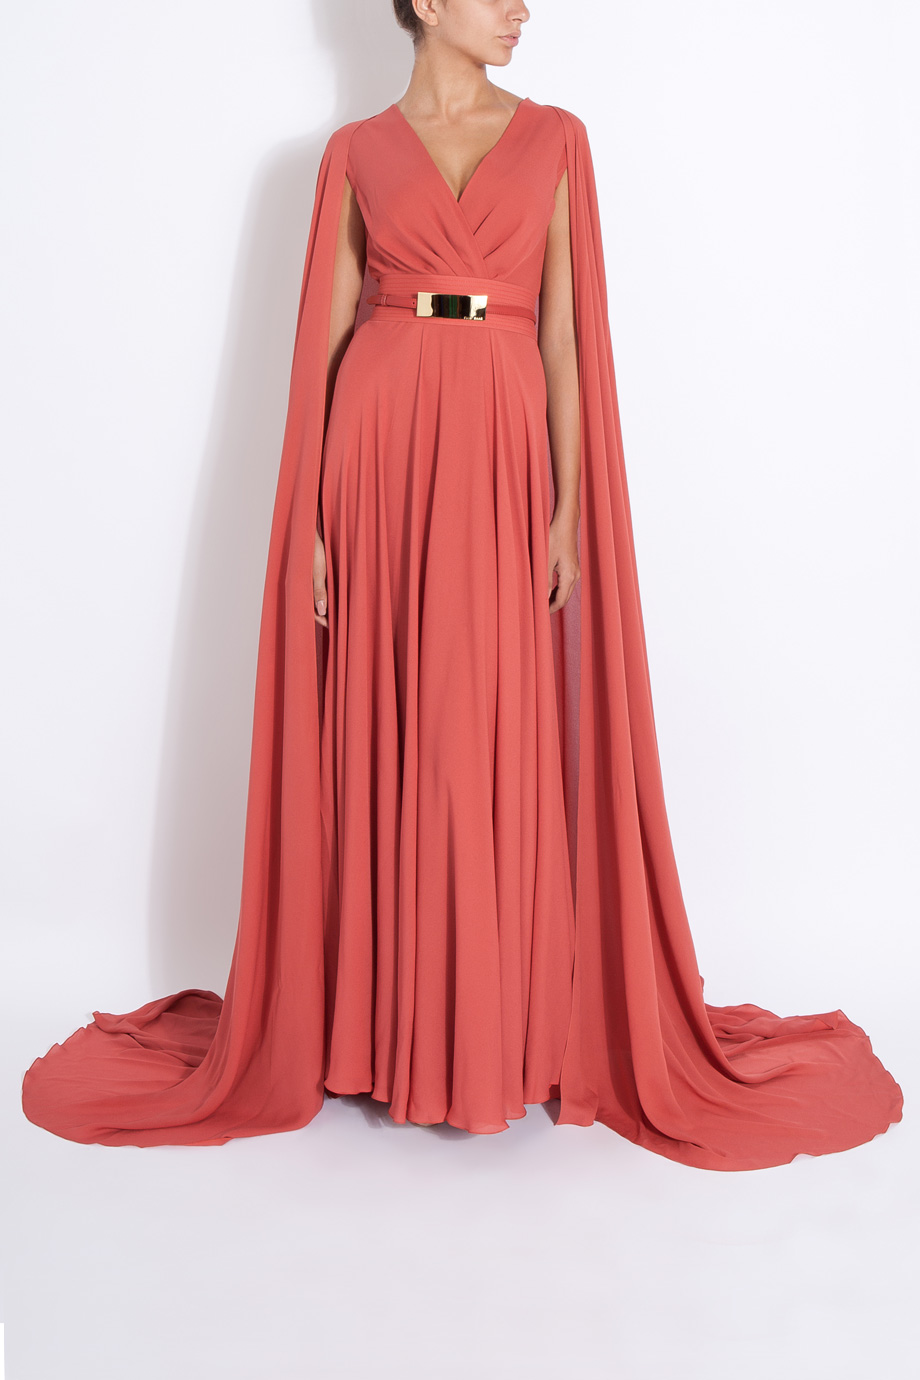 Lyst - Elie Saab Long Cap Detail Gown in Red